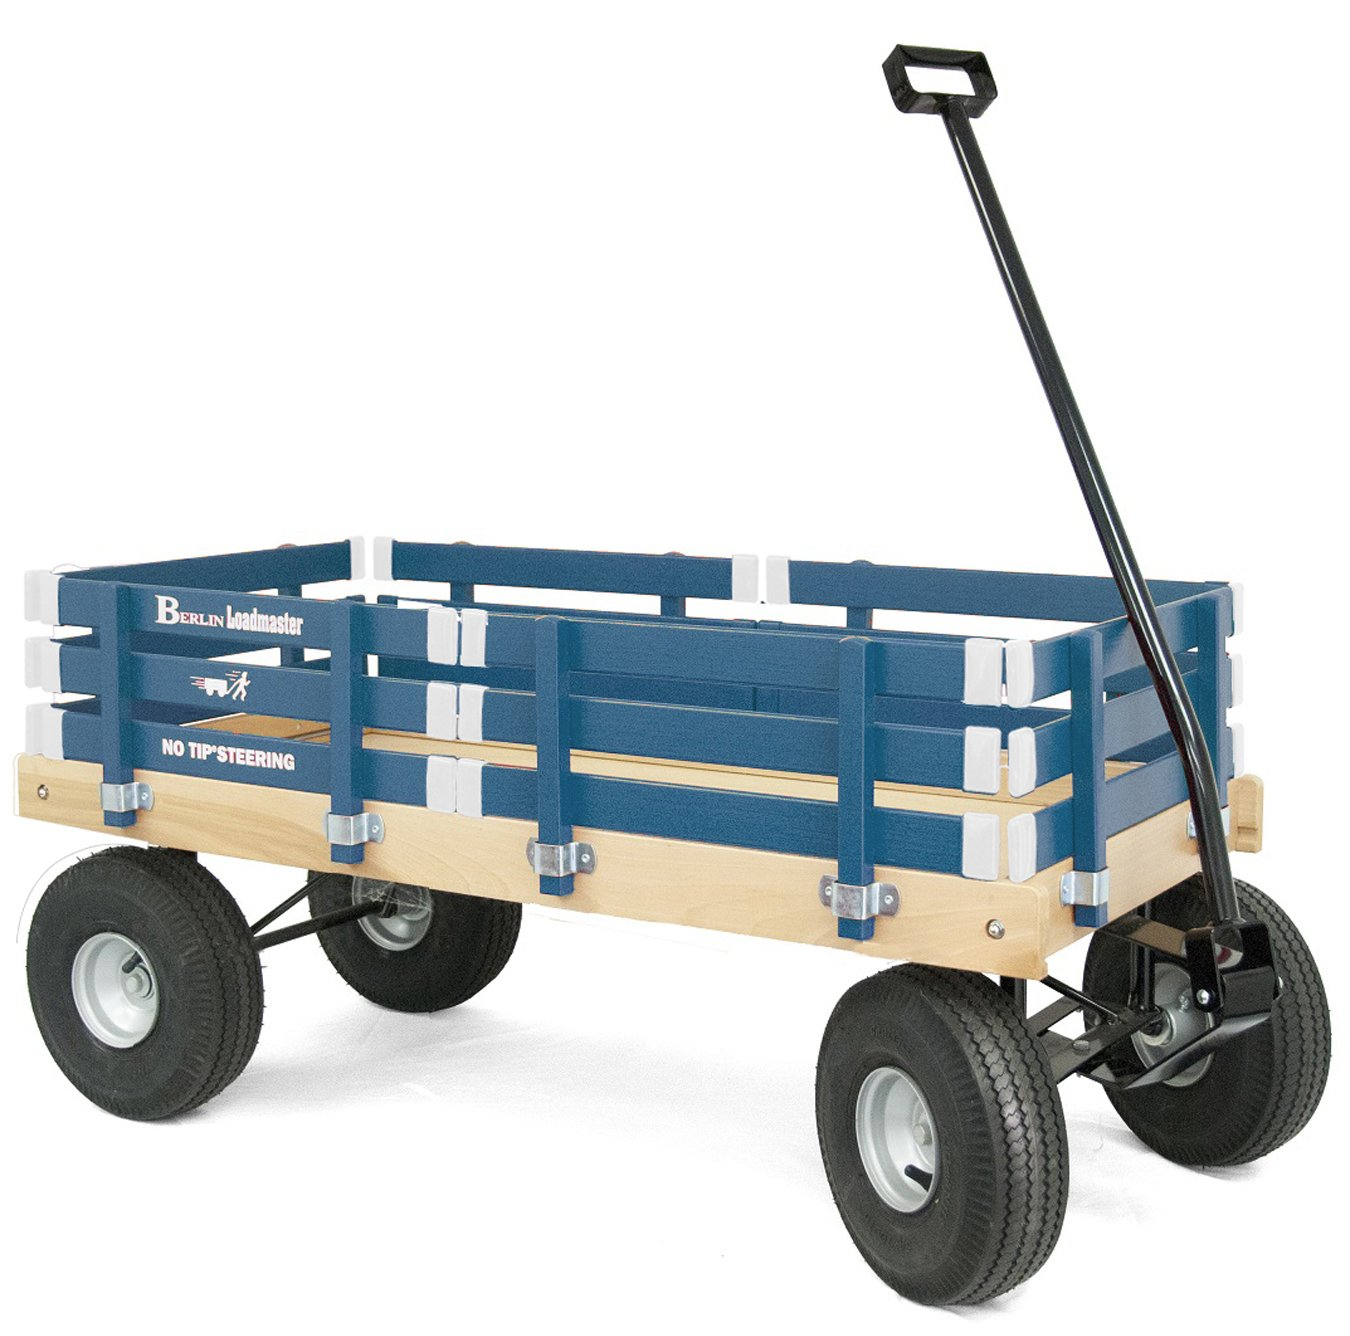 Berlin F600 Amish-Made All-Terrain Tires Loadmaster Ride-On Wagon, Navy